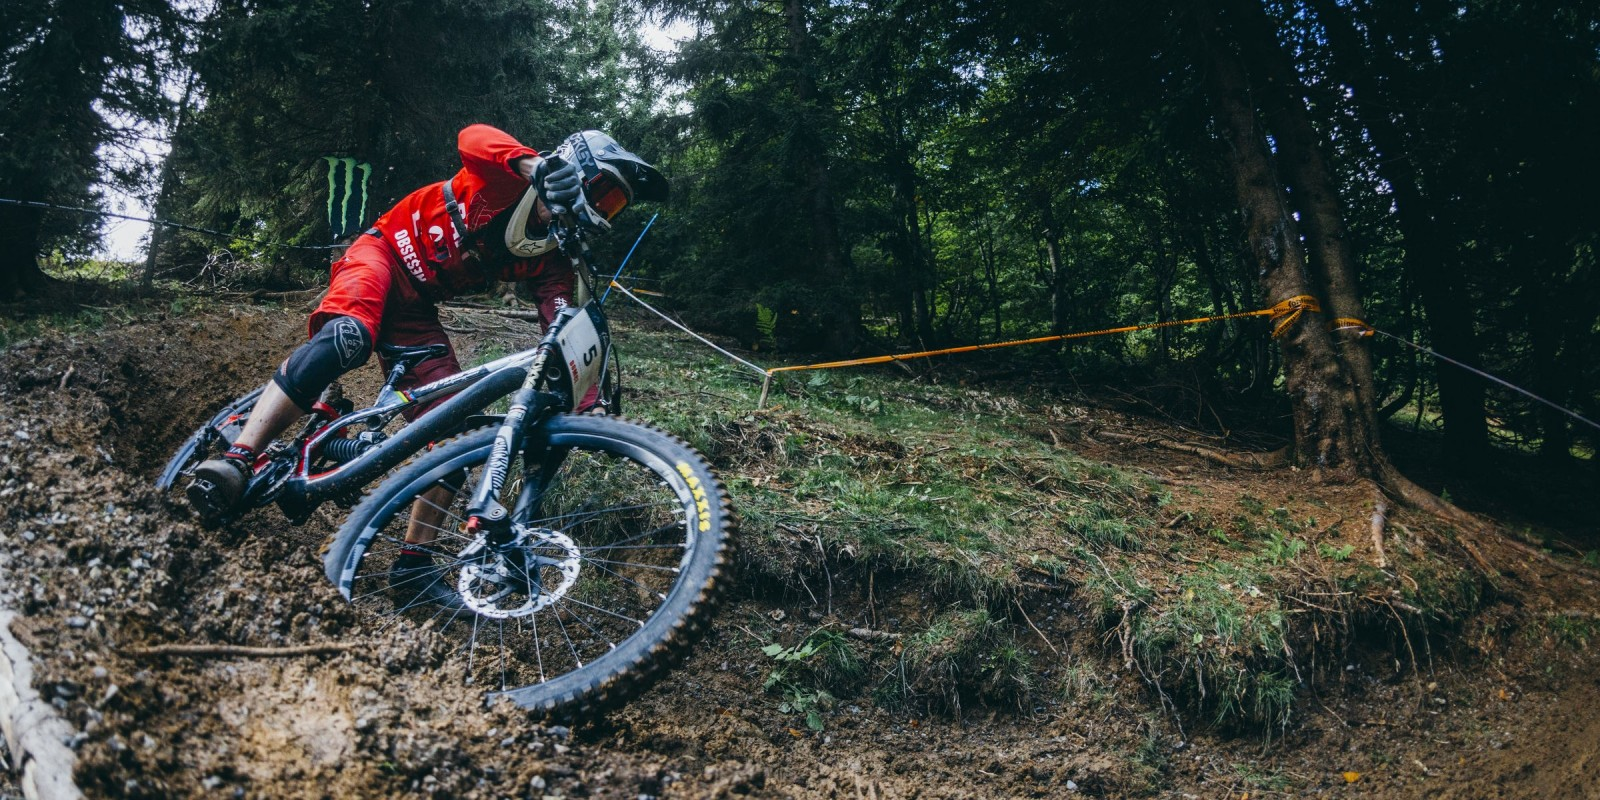 4th race of Unior DH Cup in Slovenia